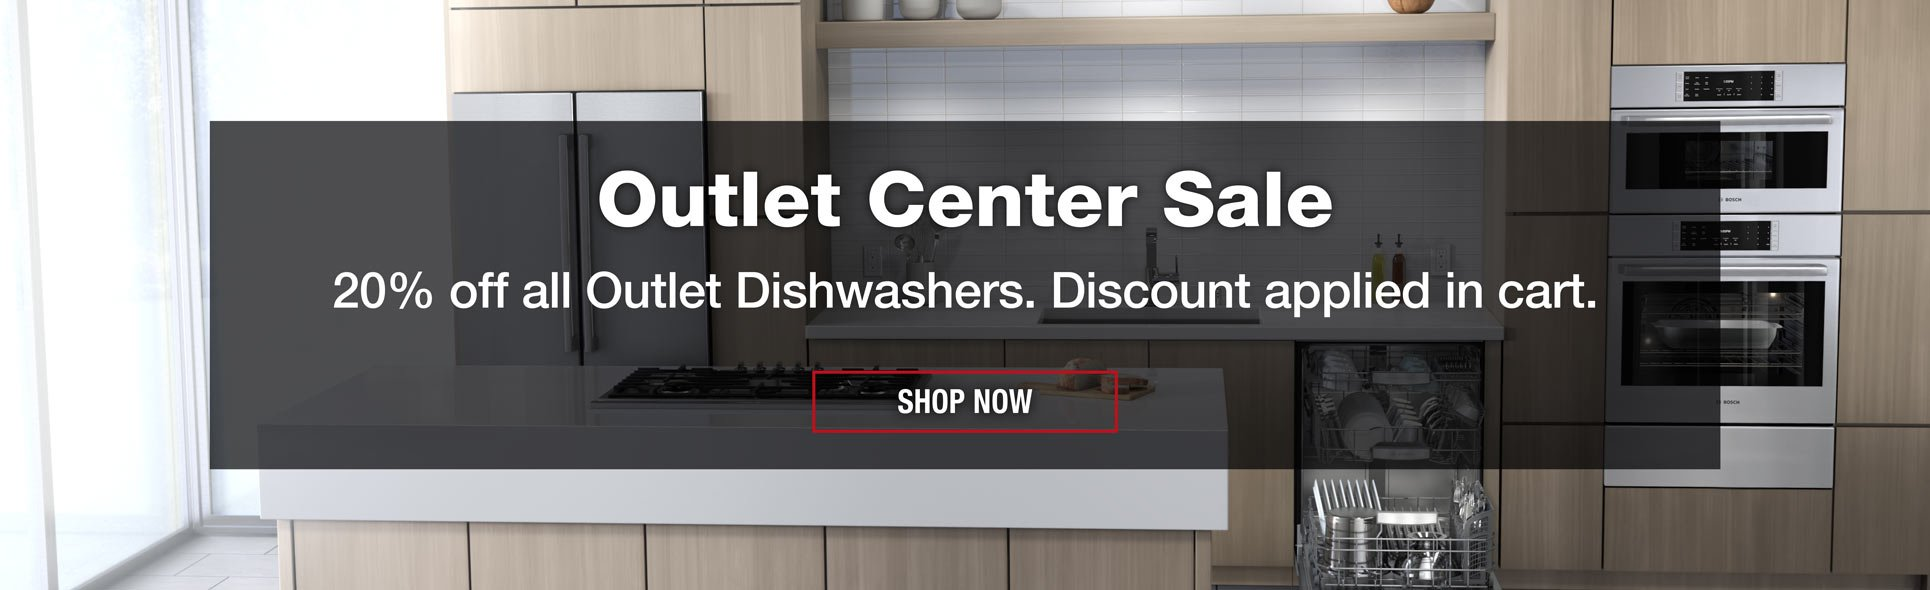 20 Off All Outlet Dishwashers Lied In Cart Now